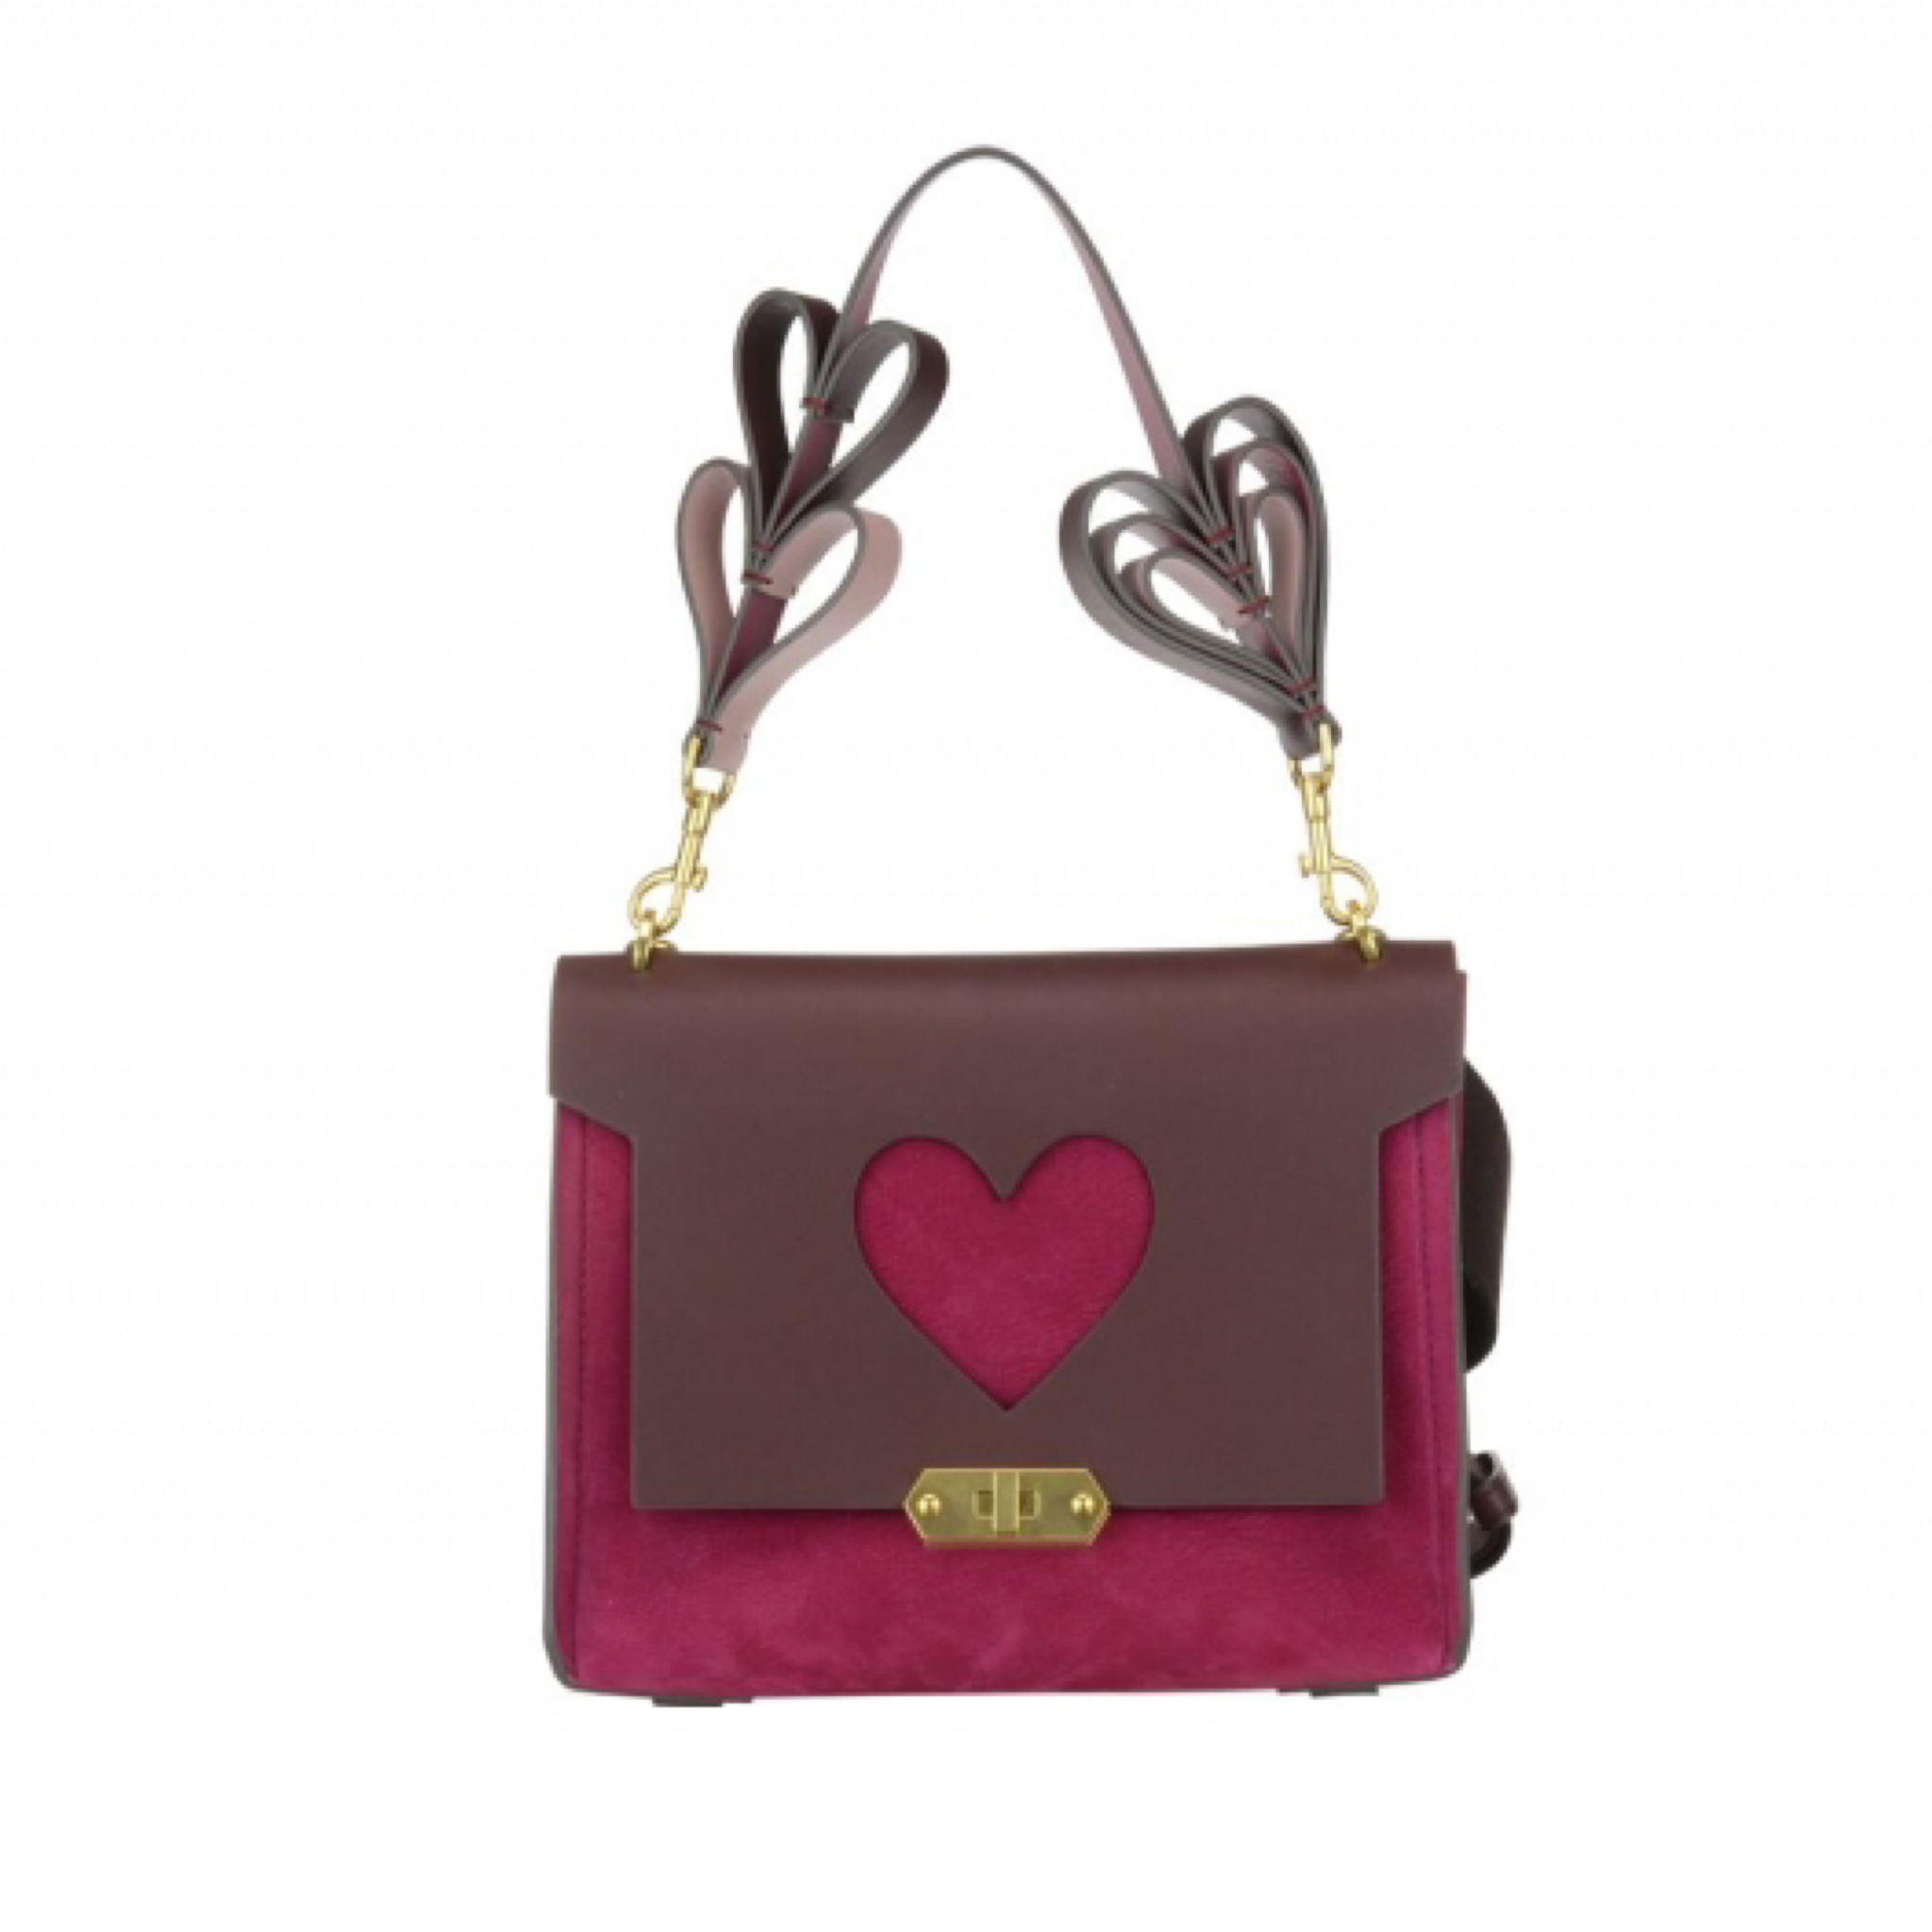 新作【Anya Hindmarch】BATHURST XS HEART ショルダー